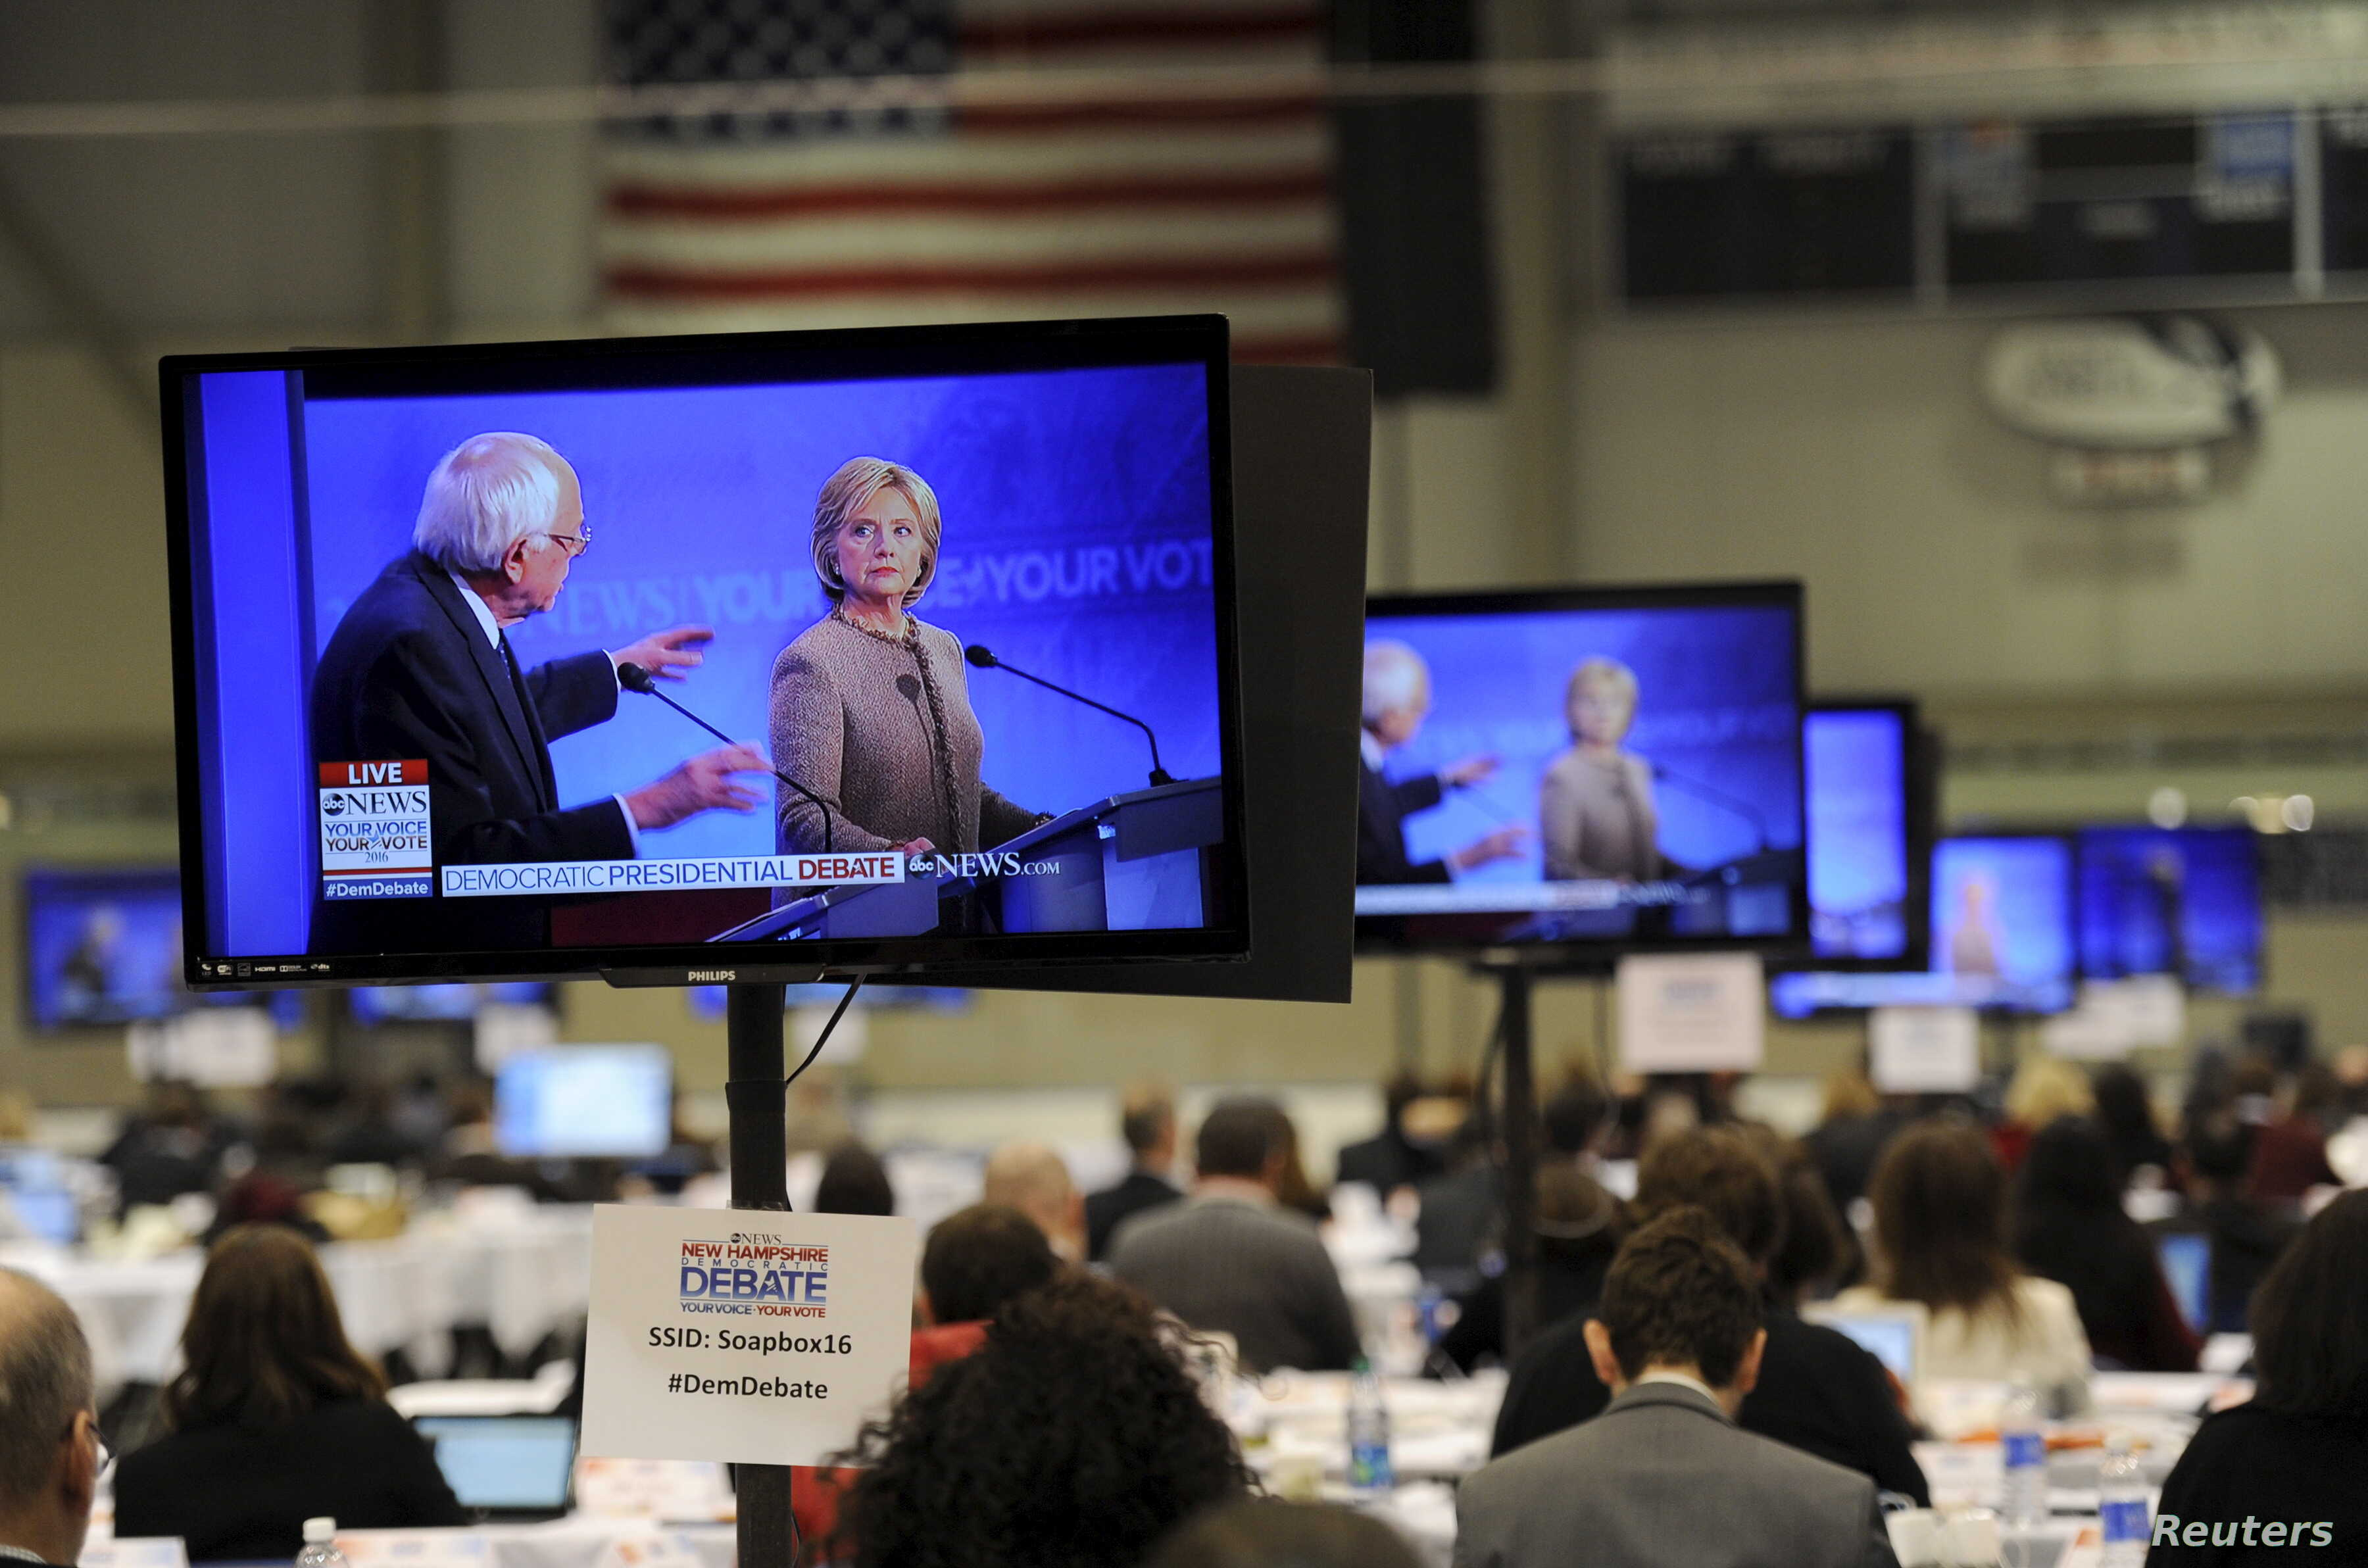 US Democratic presidential candidates Hillary Clinton and Bernie Sanders appear on television screens in the media work-room during the Democratic presidential candidates debate.